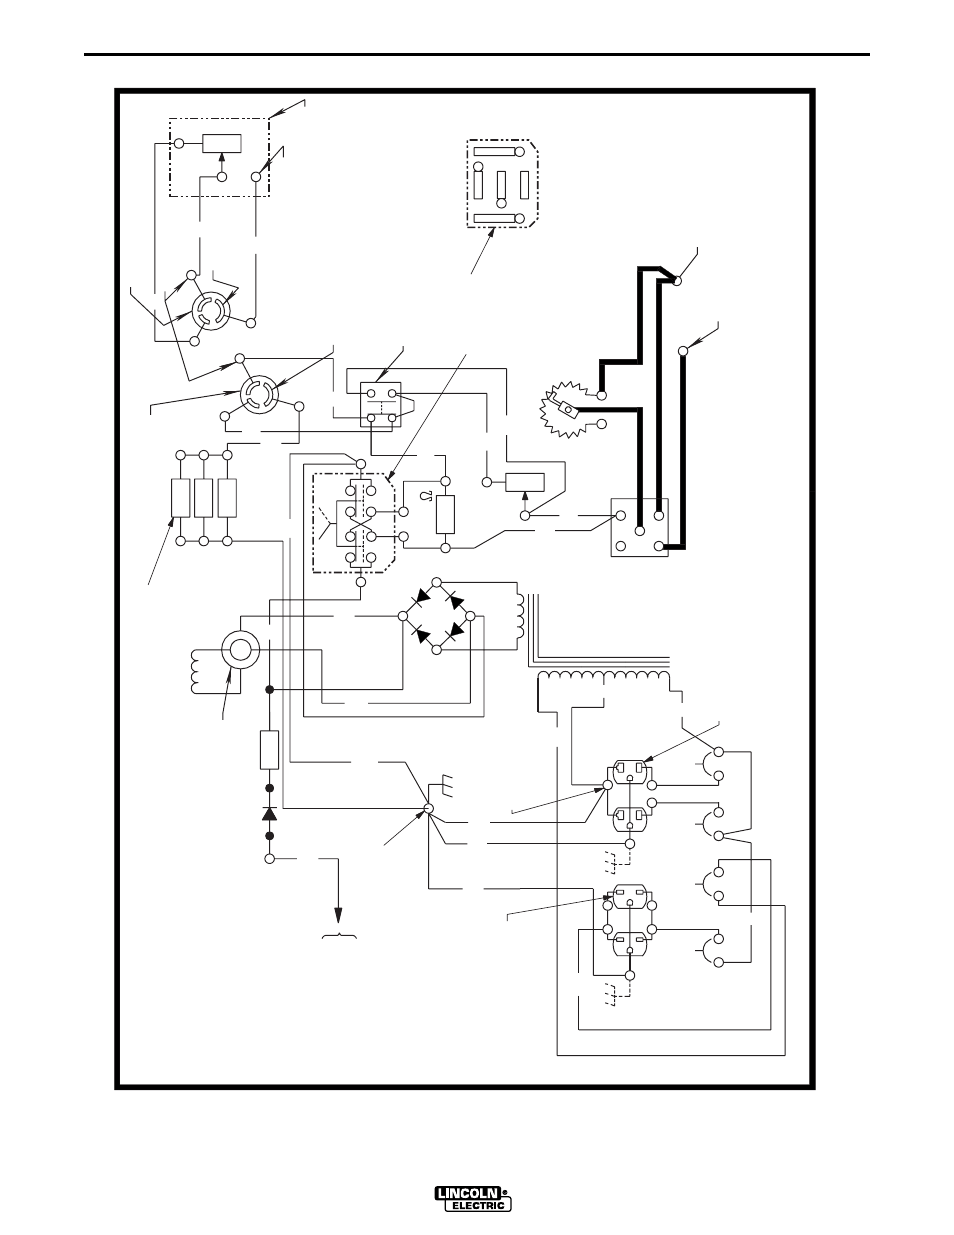 medium resolution of wiring diagrams sae400 weld n air control wiring diagram sae 400